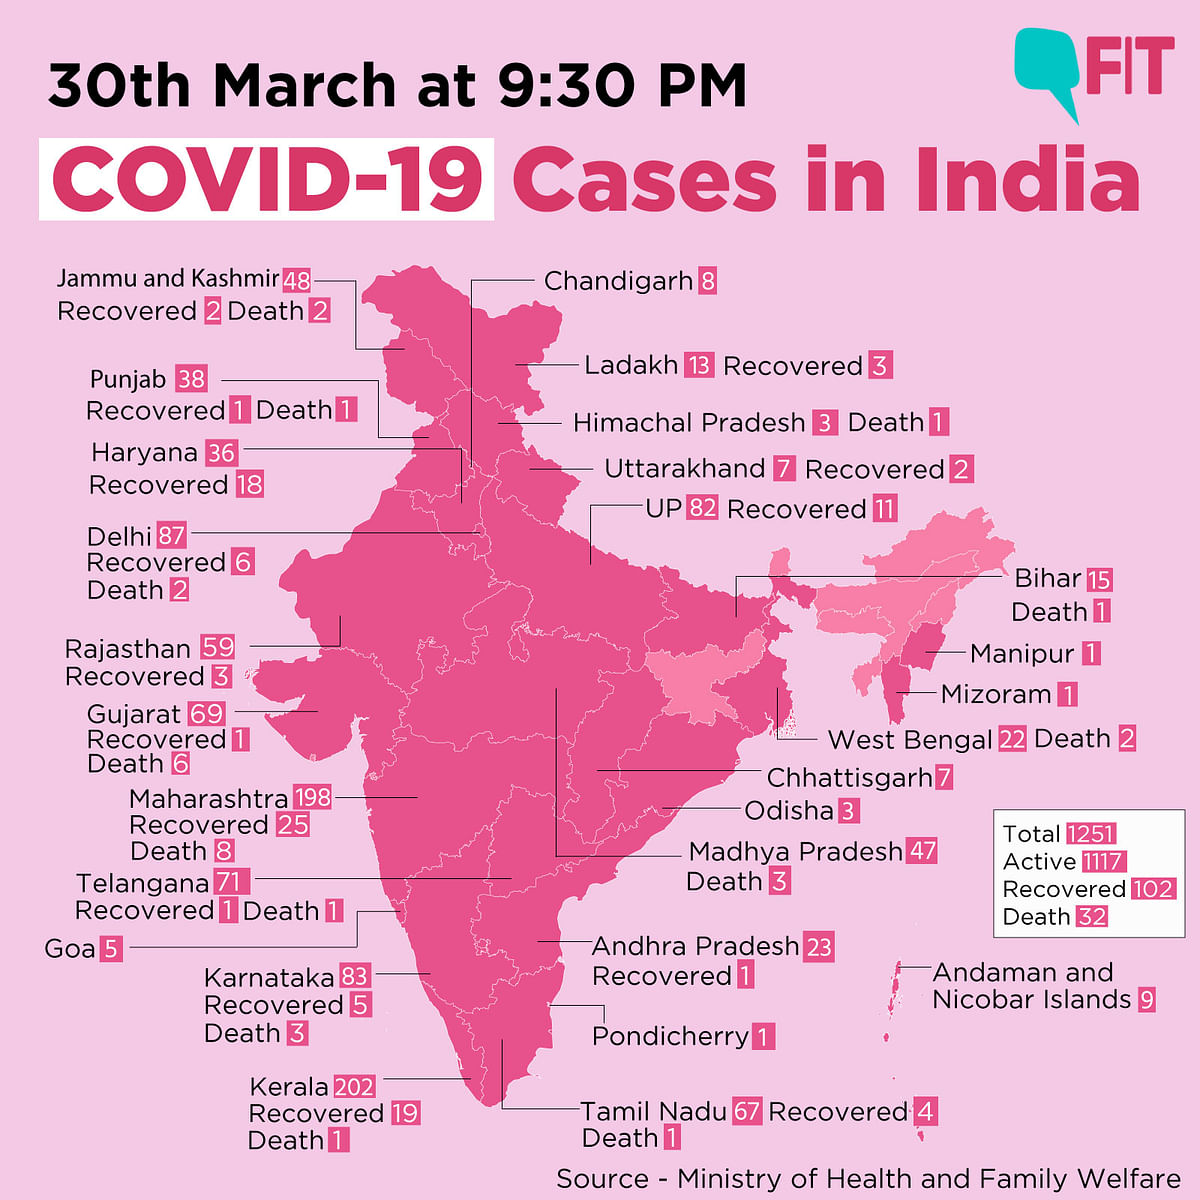 COVID-19 India Update: Cases Climb to 1251, Says Health Ministry